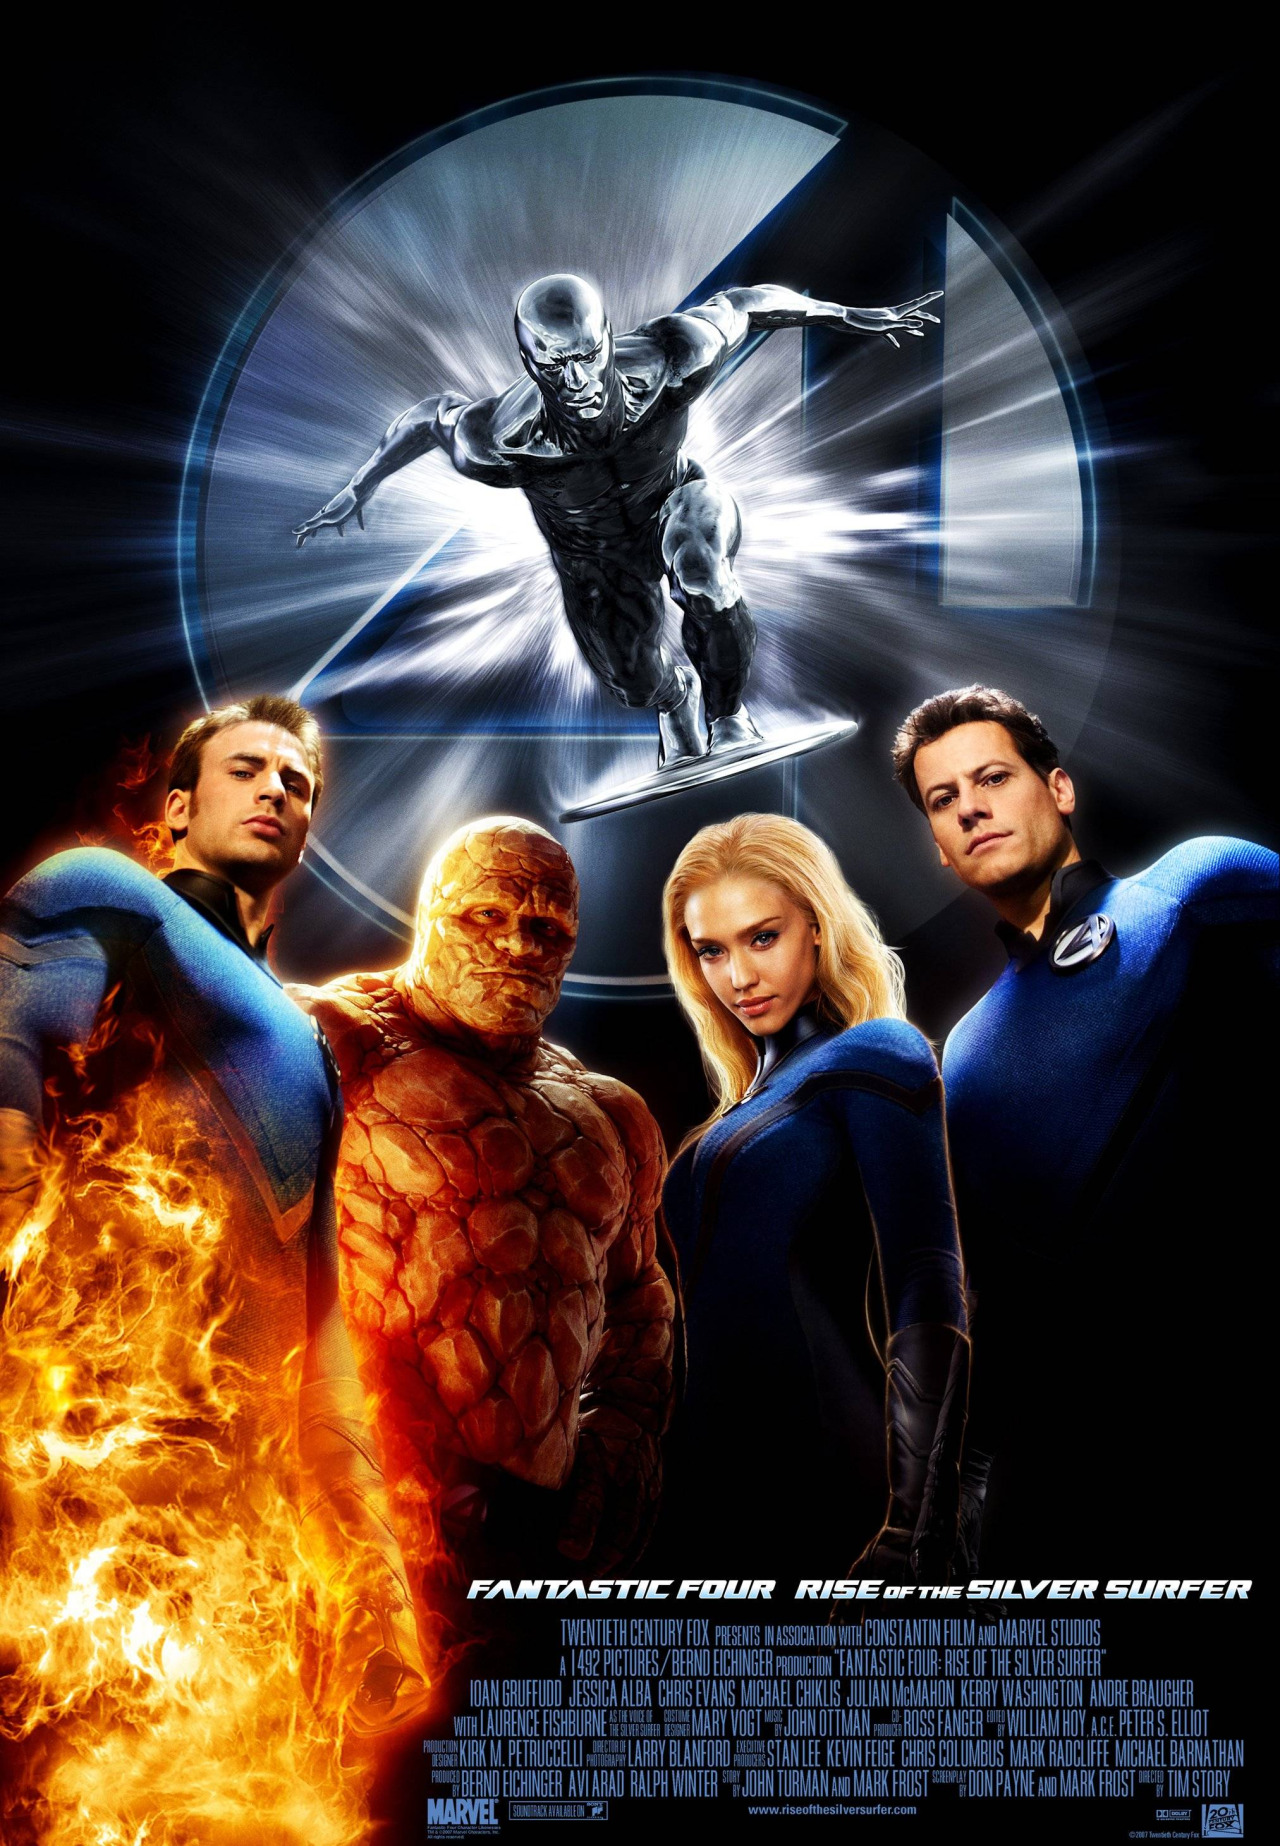 Fantastic 4 Rise of the Silver Surfer Review